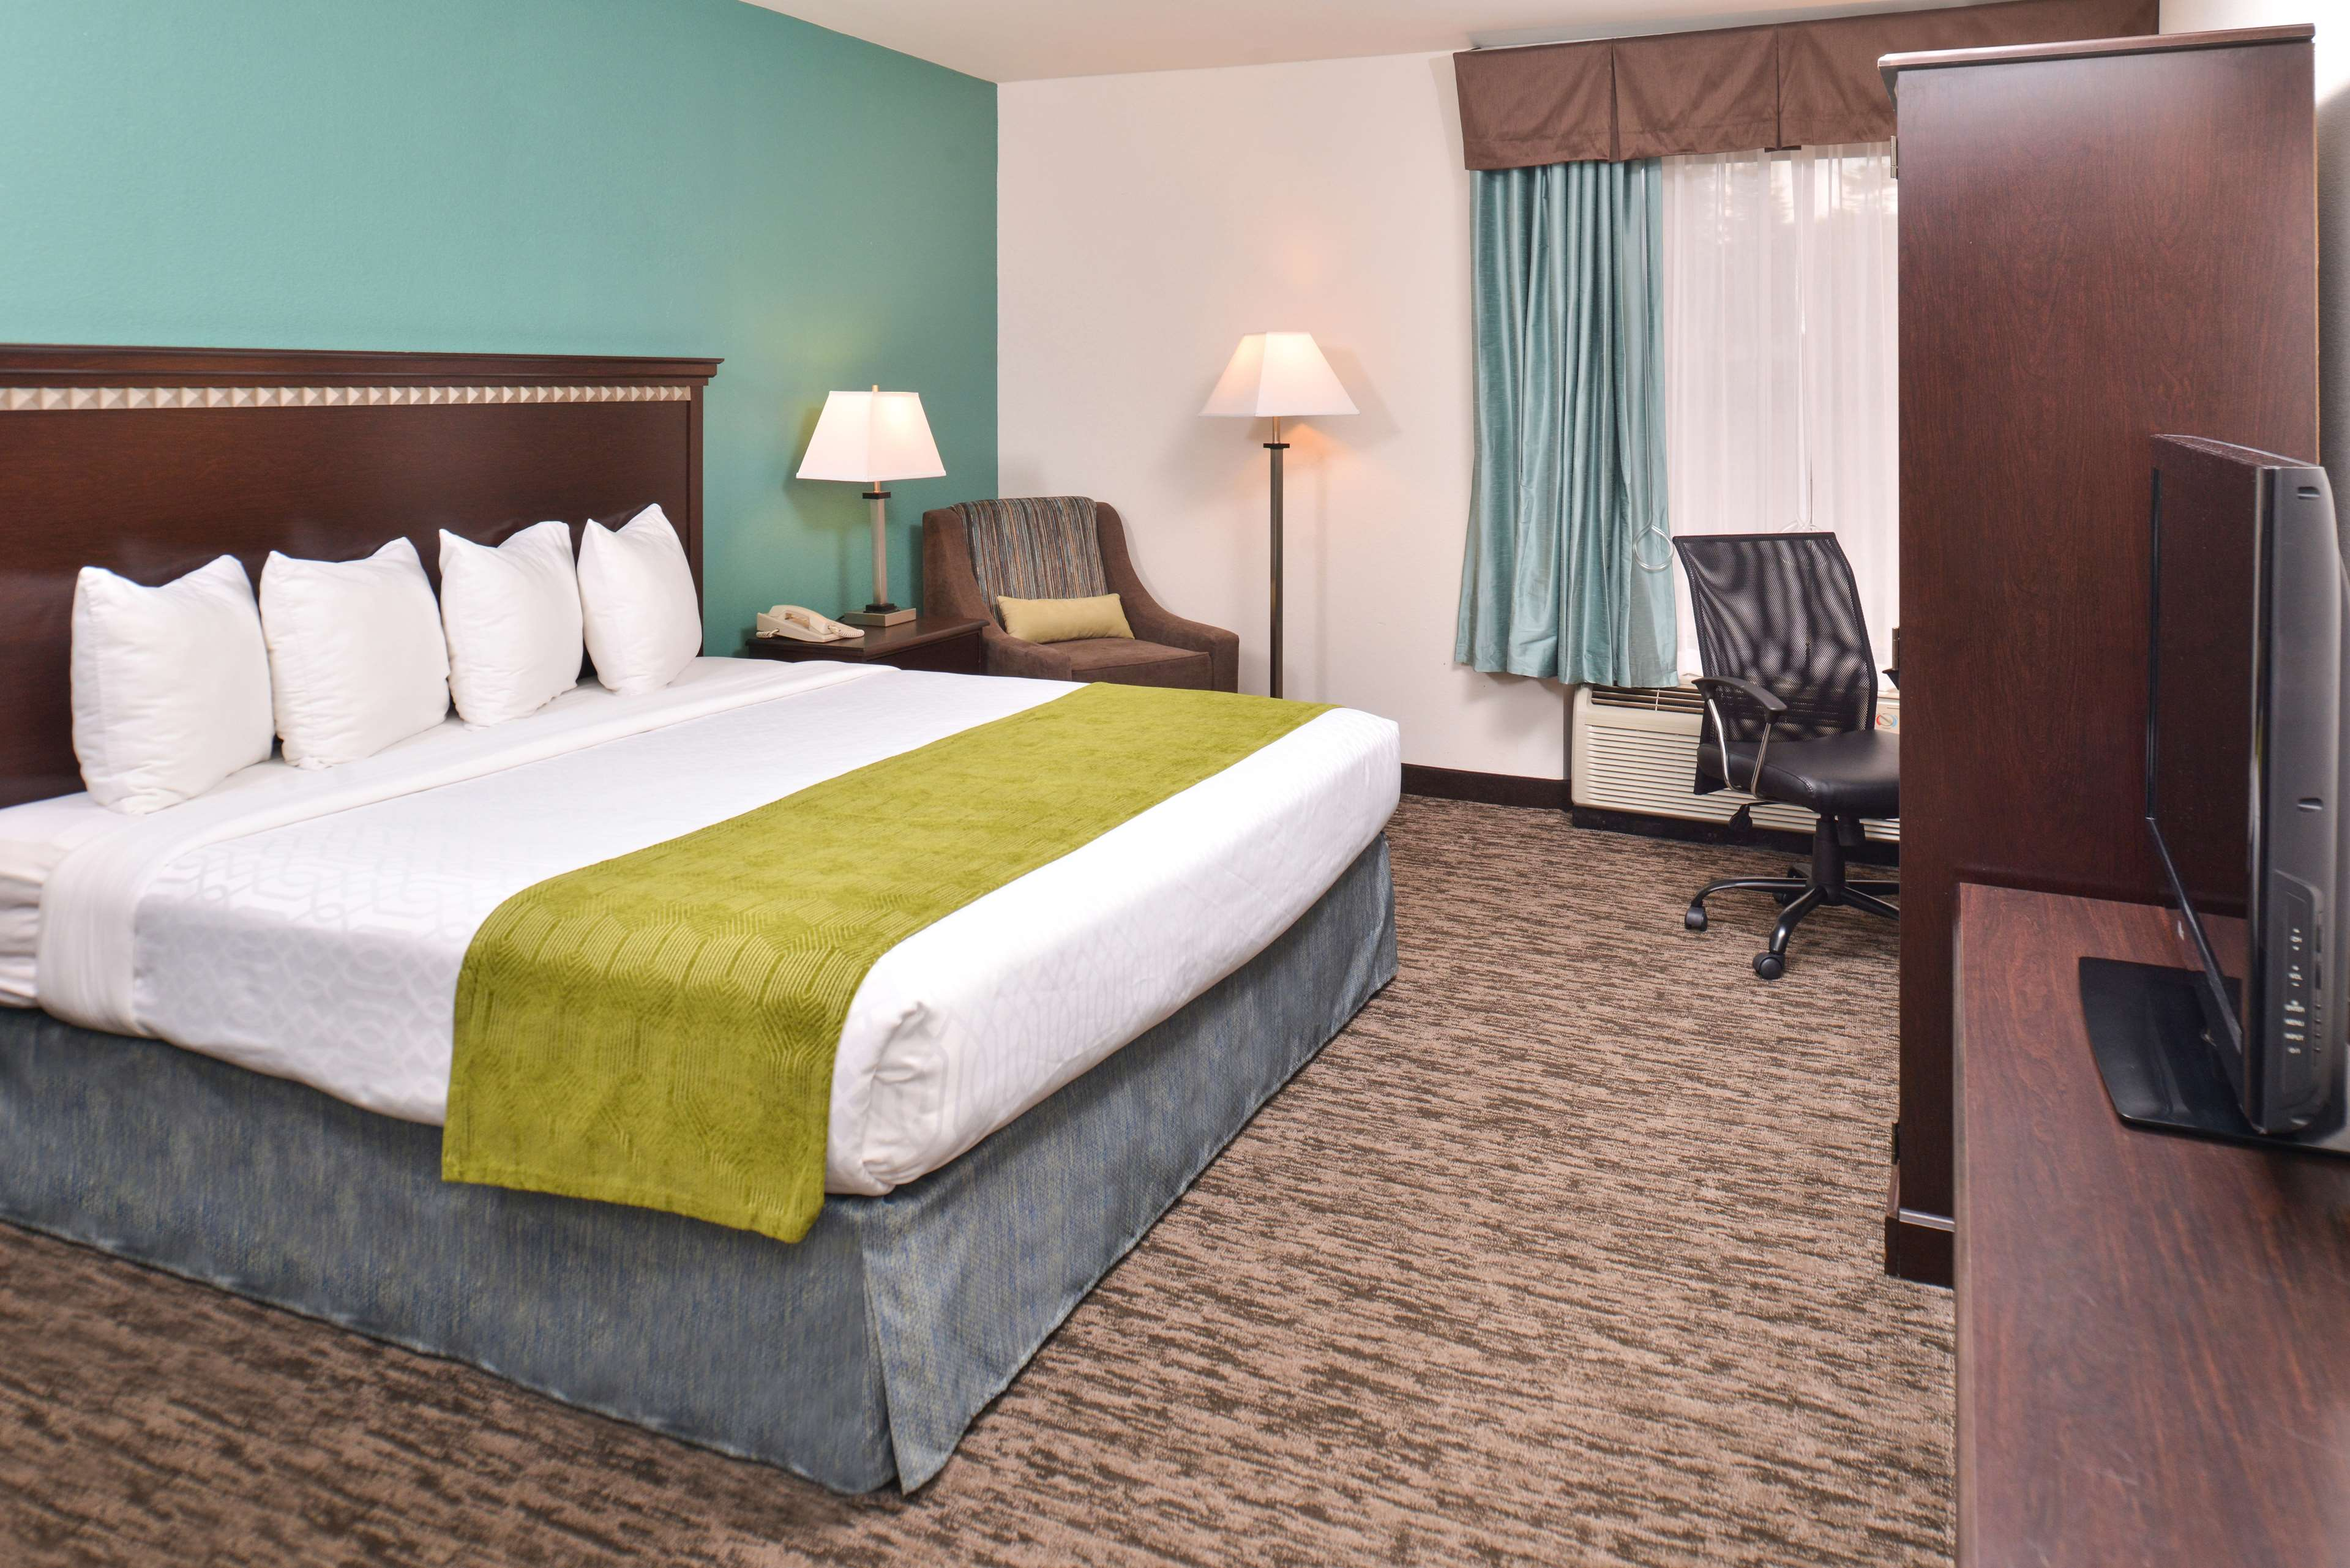 Best Western Plus Chicagoland - Countryside image 32